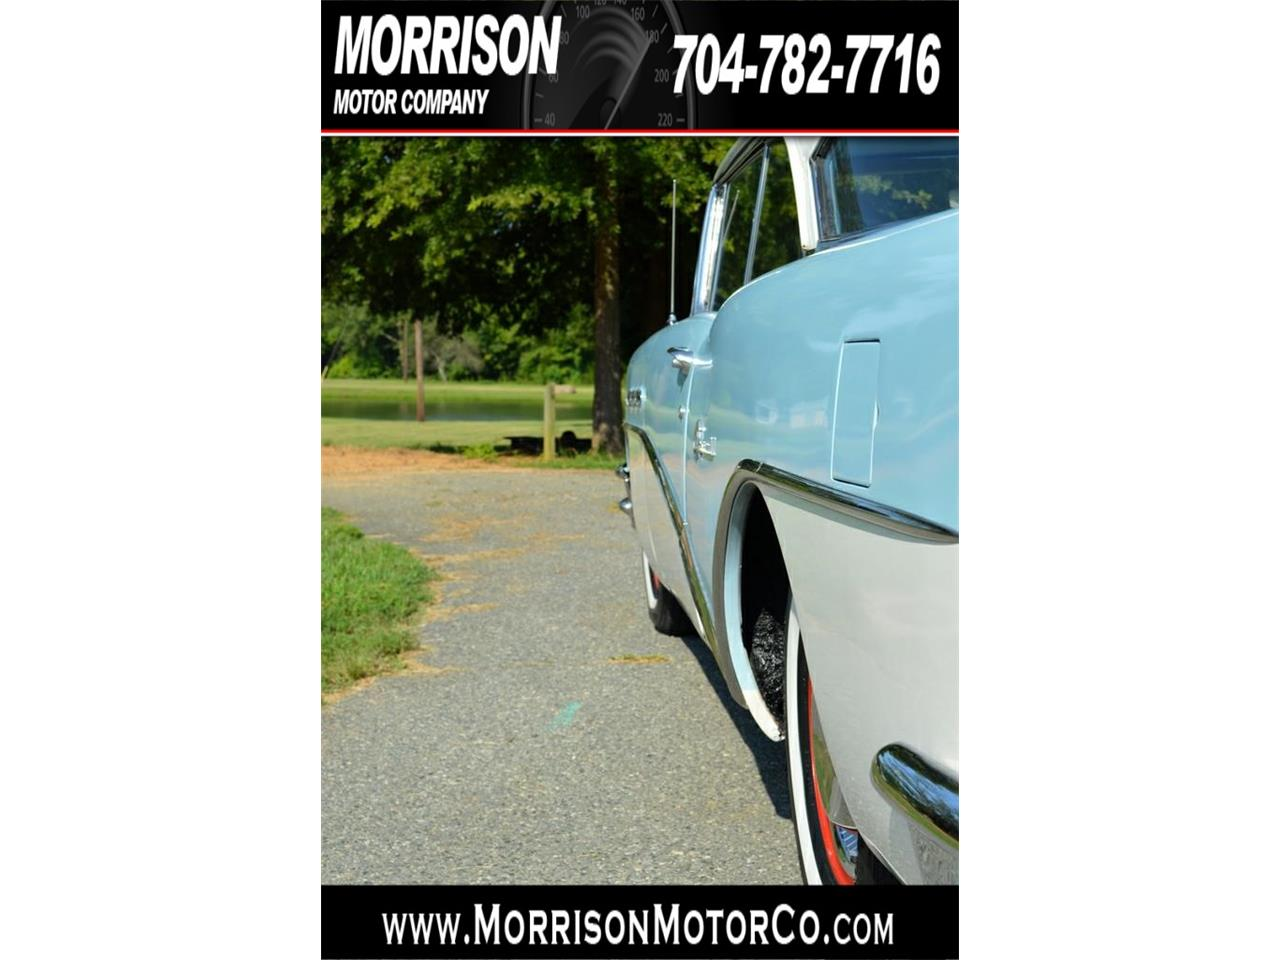 Large Picture of 1956 Special Riviera located in North Carolina Offered by Morrison Motor Company - M8P8